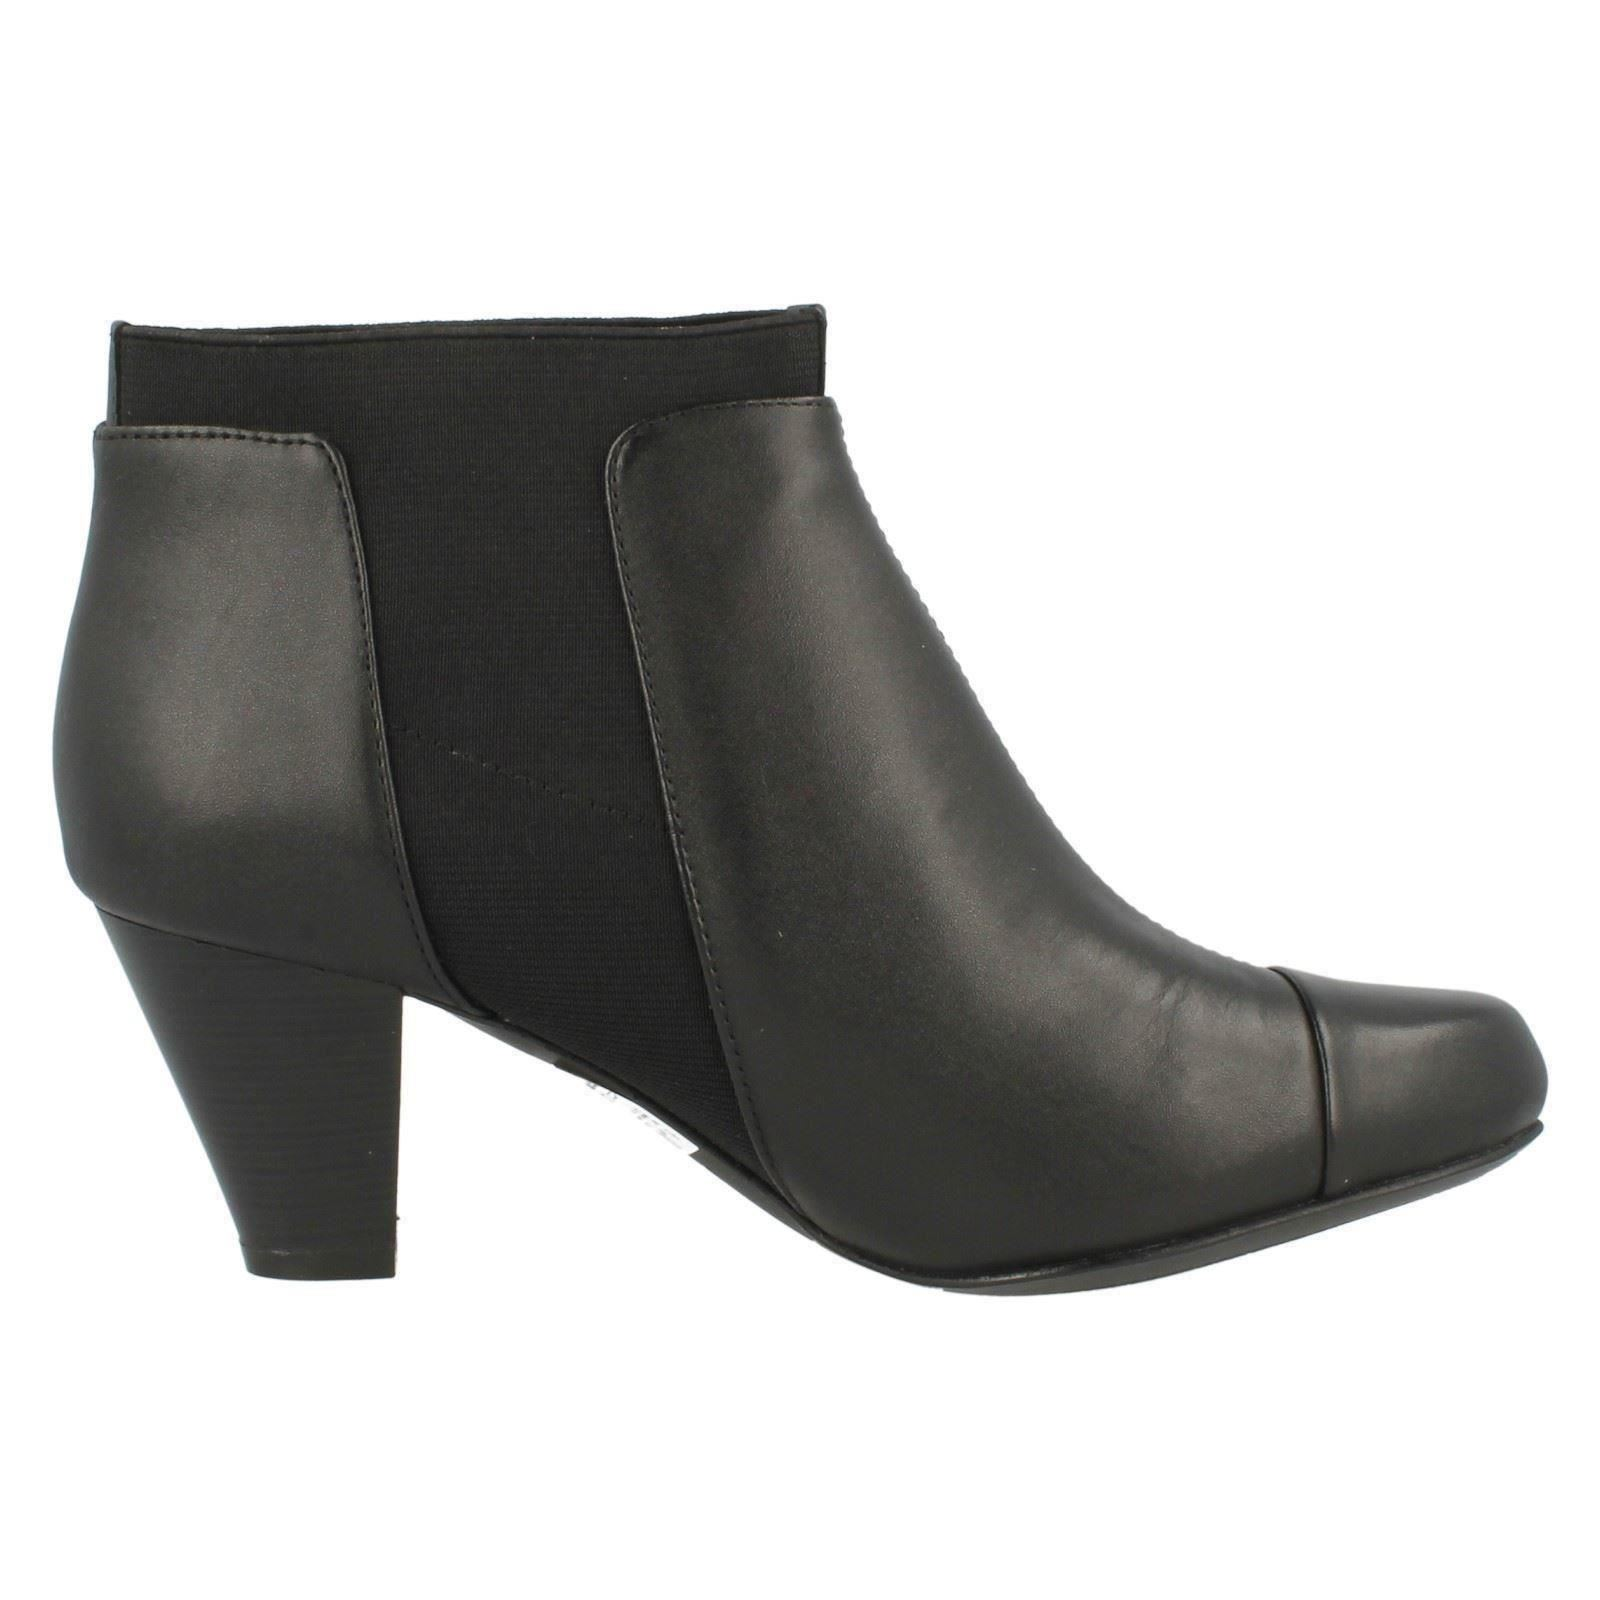 Ladies Clarks Ankle Boots The Style - Lodge Gates